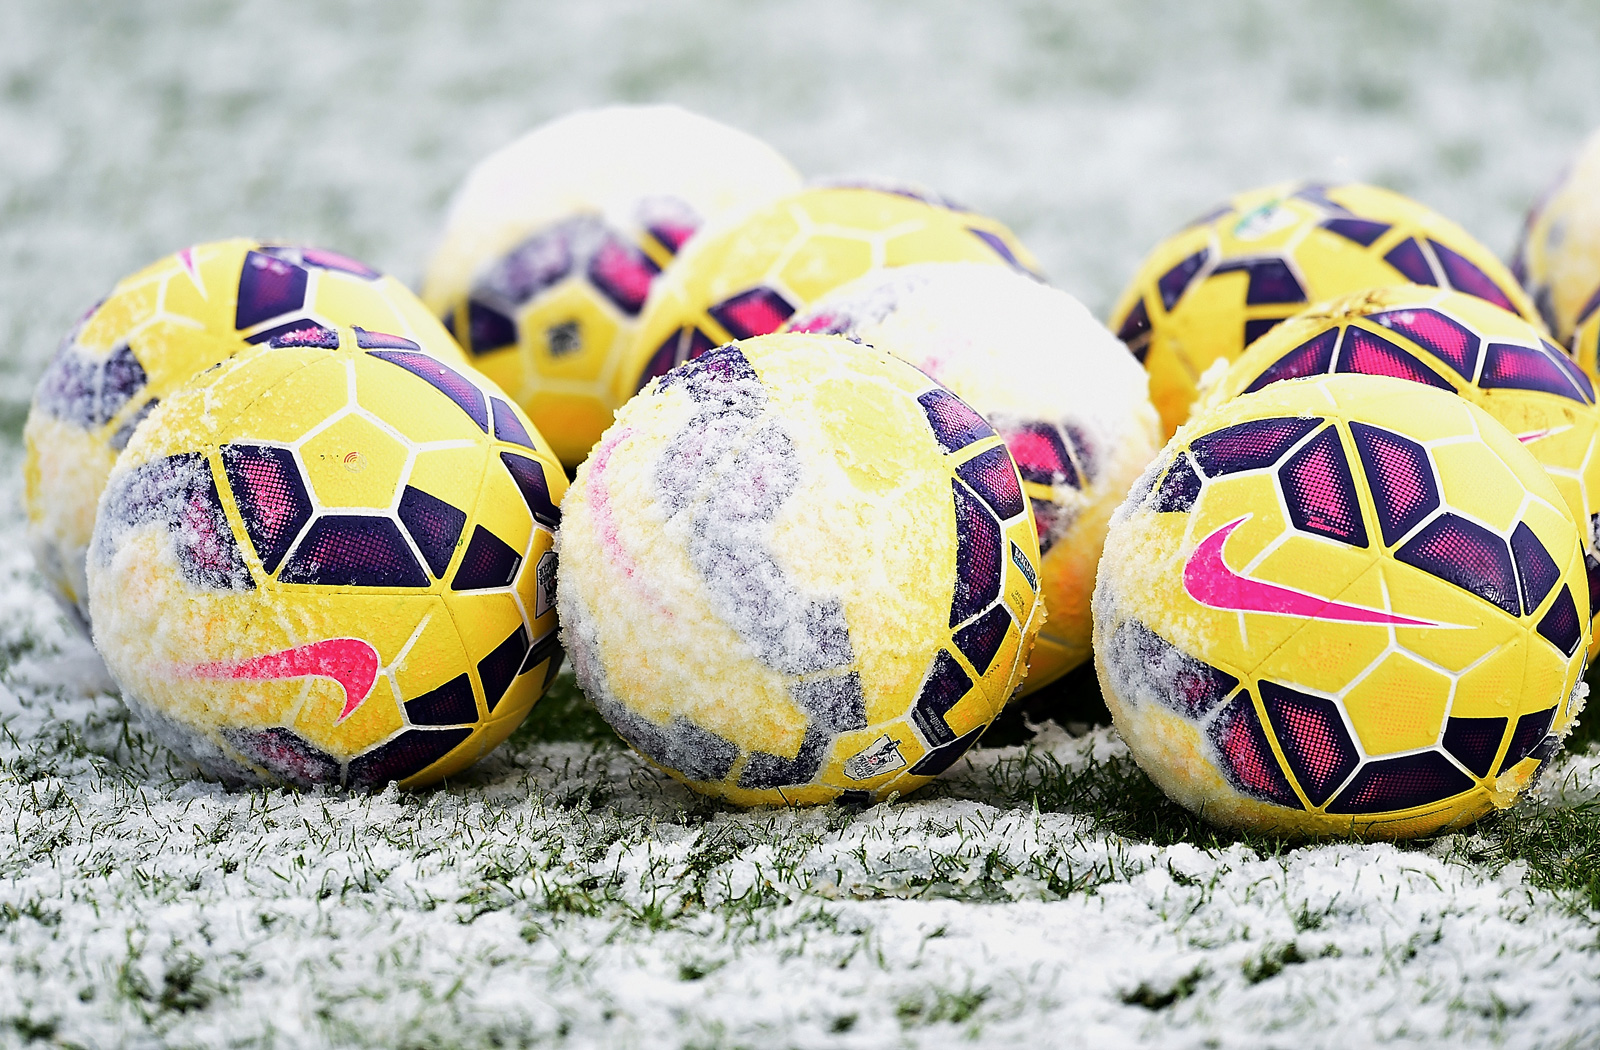 The yellow balls are out at a January 2015 training session at Liverpool.